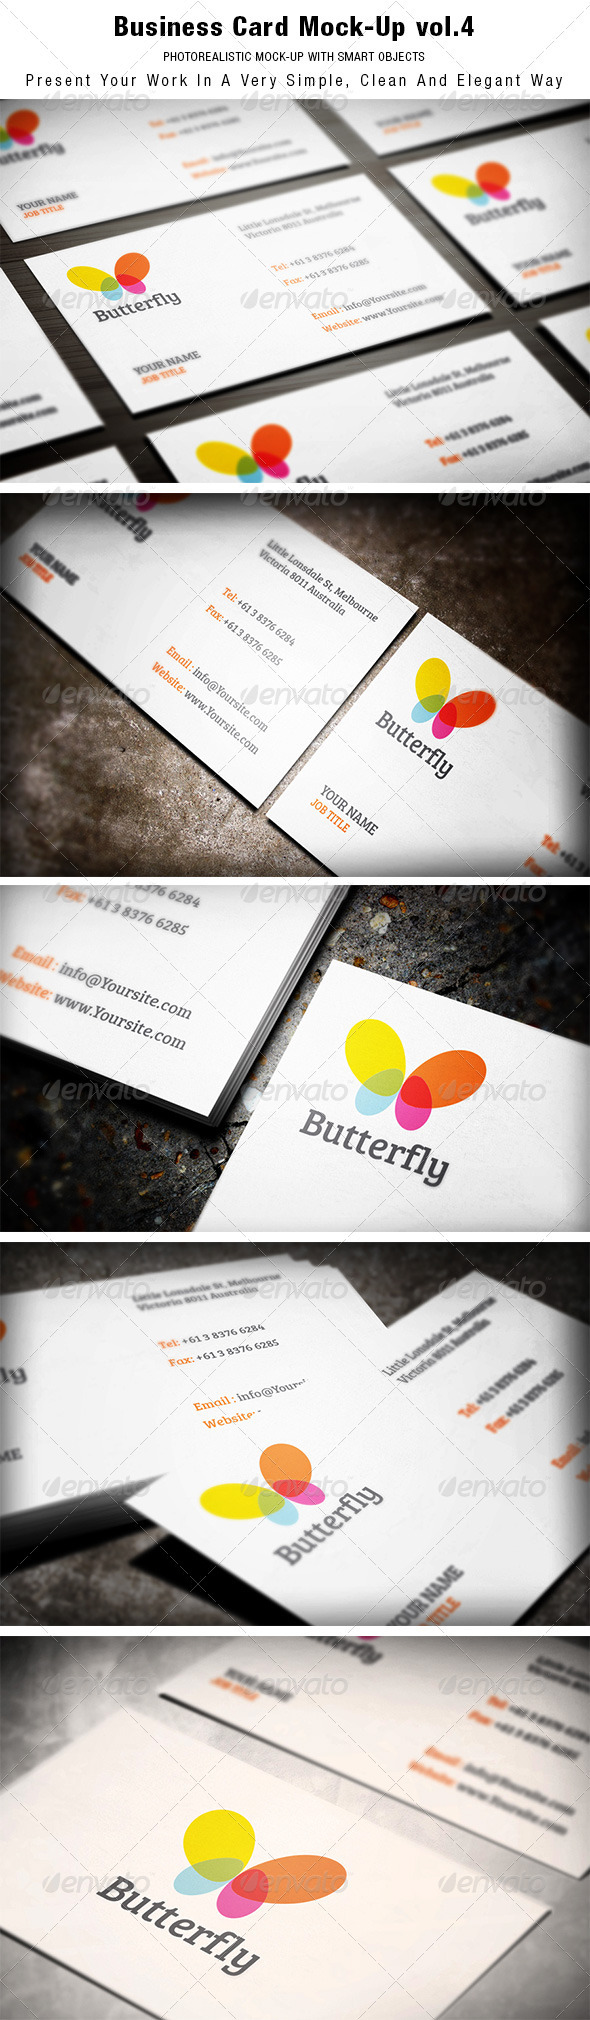 GraphicRiver Business Card Mock-up vol.4 3738447